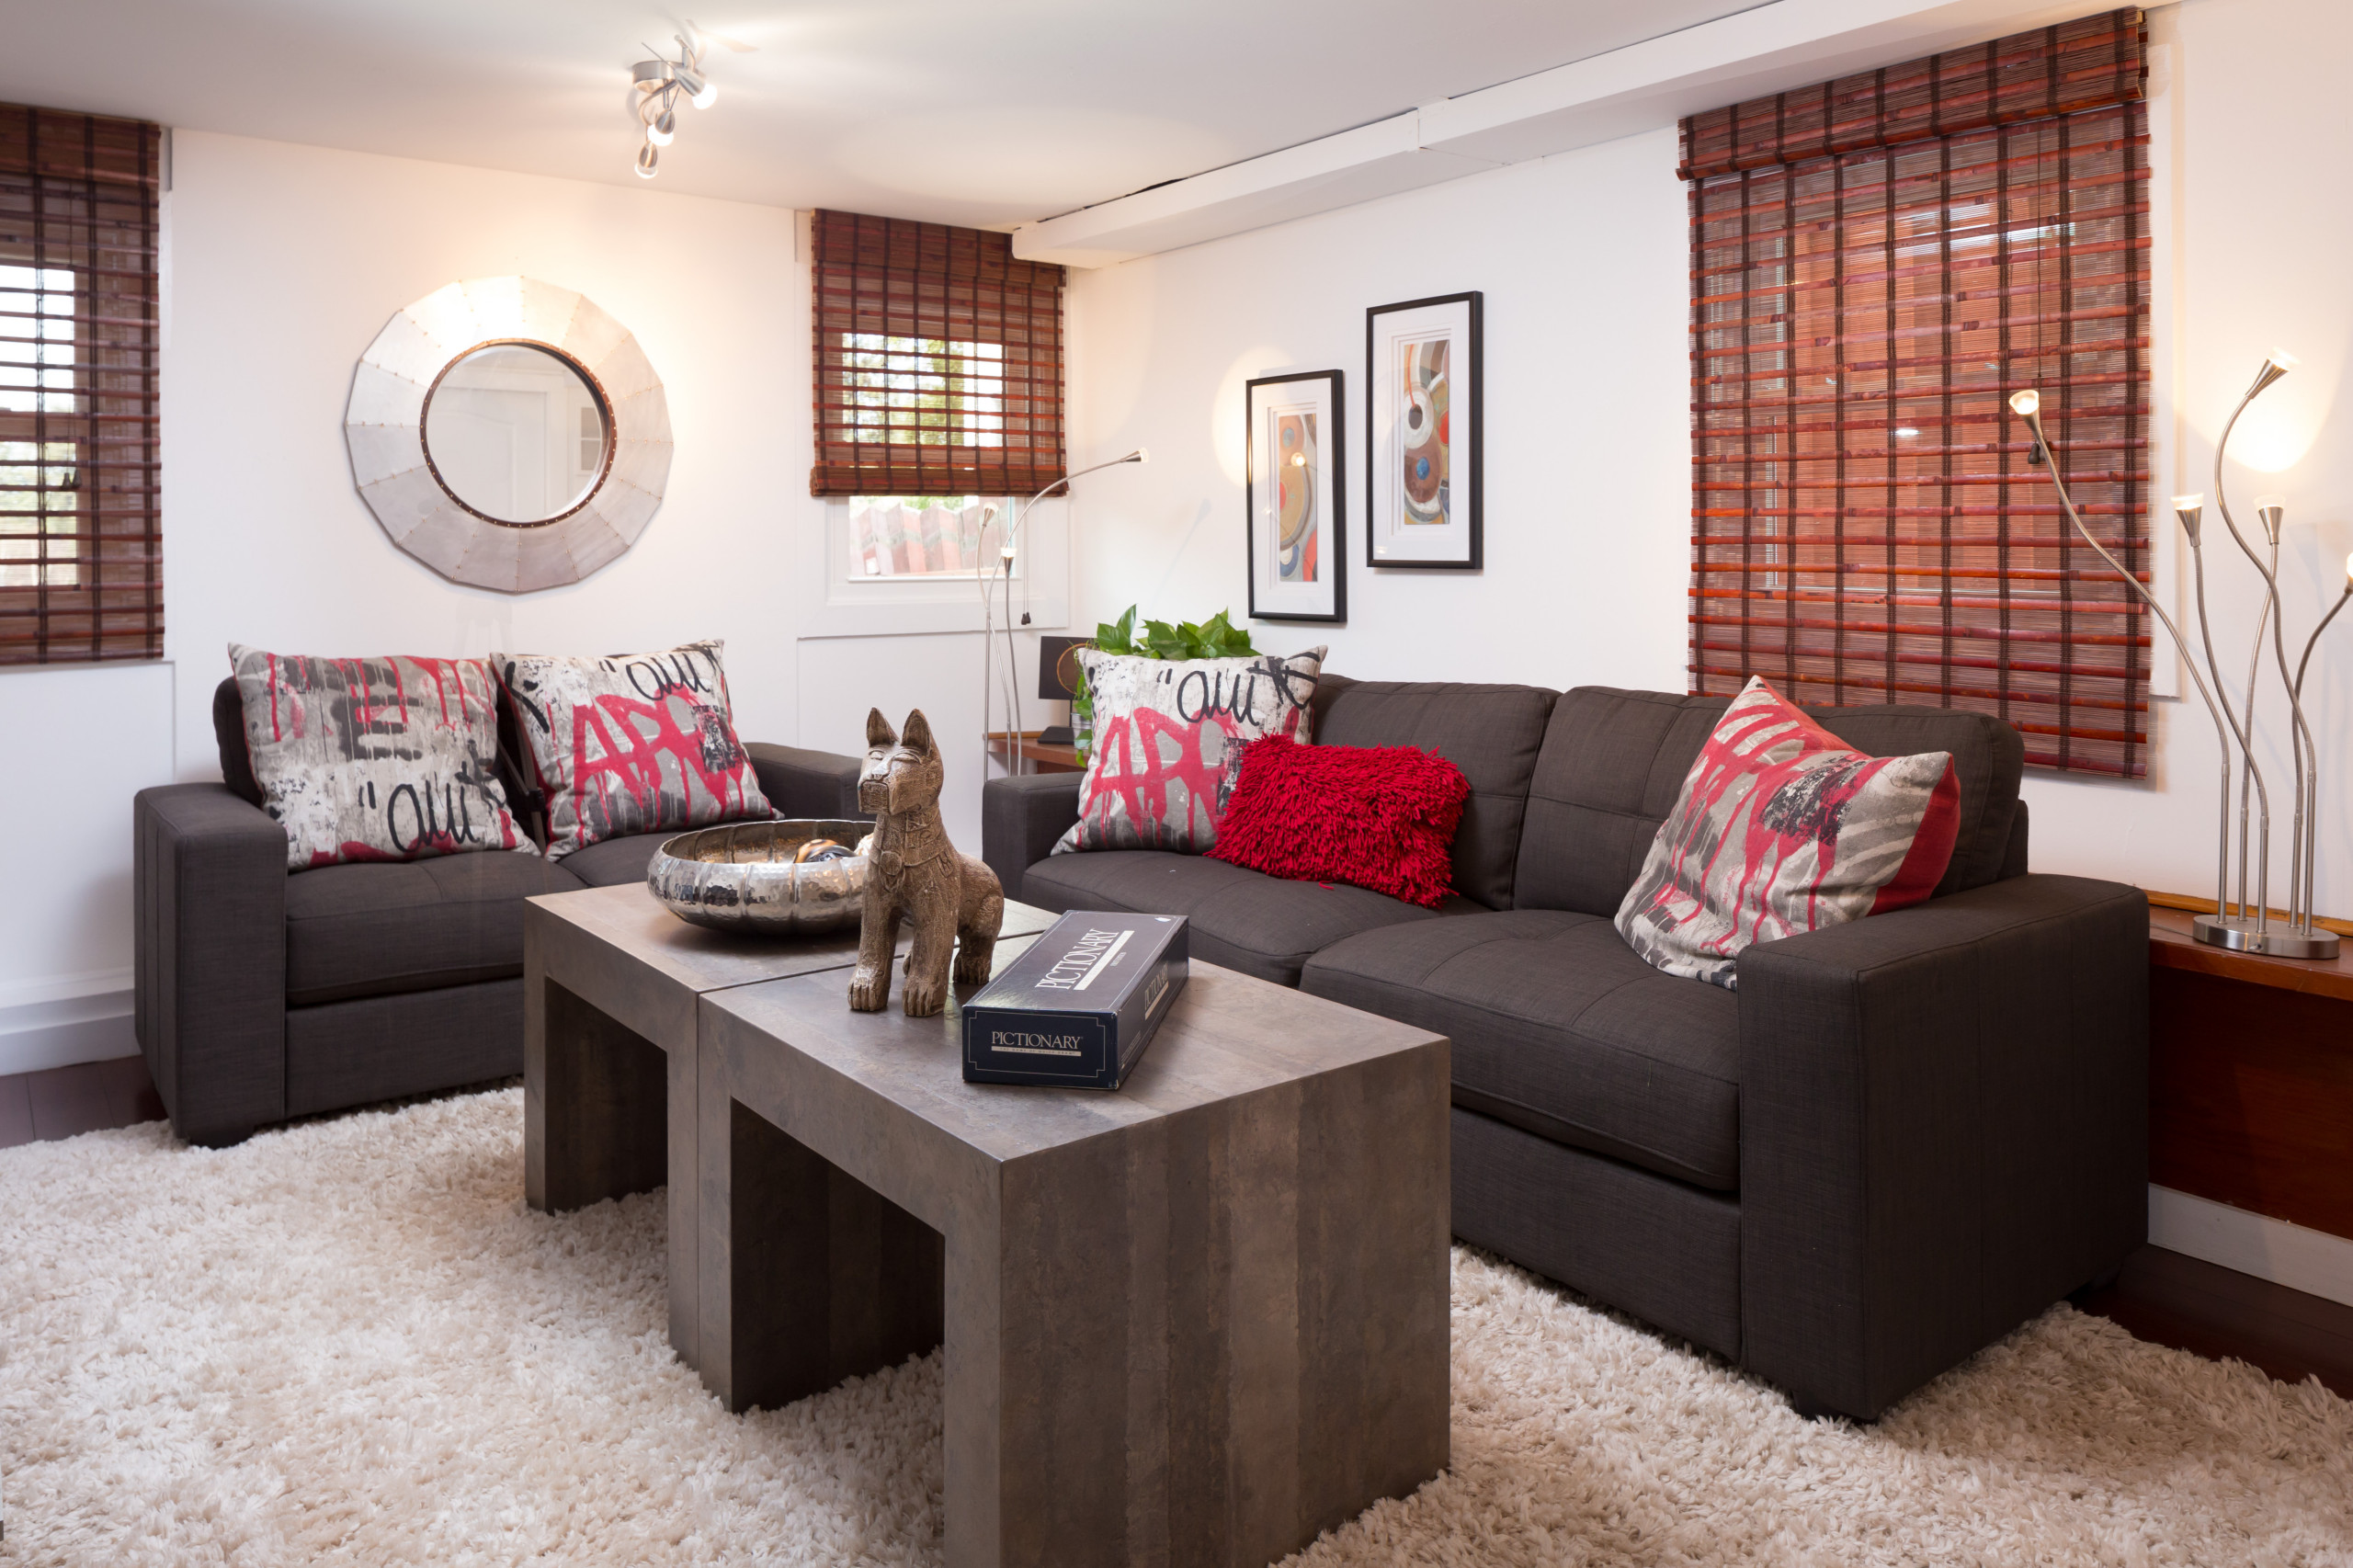 Joanne O'Donnell of Chic Home Interiors